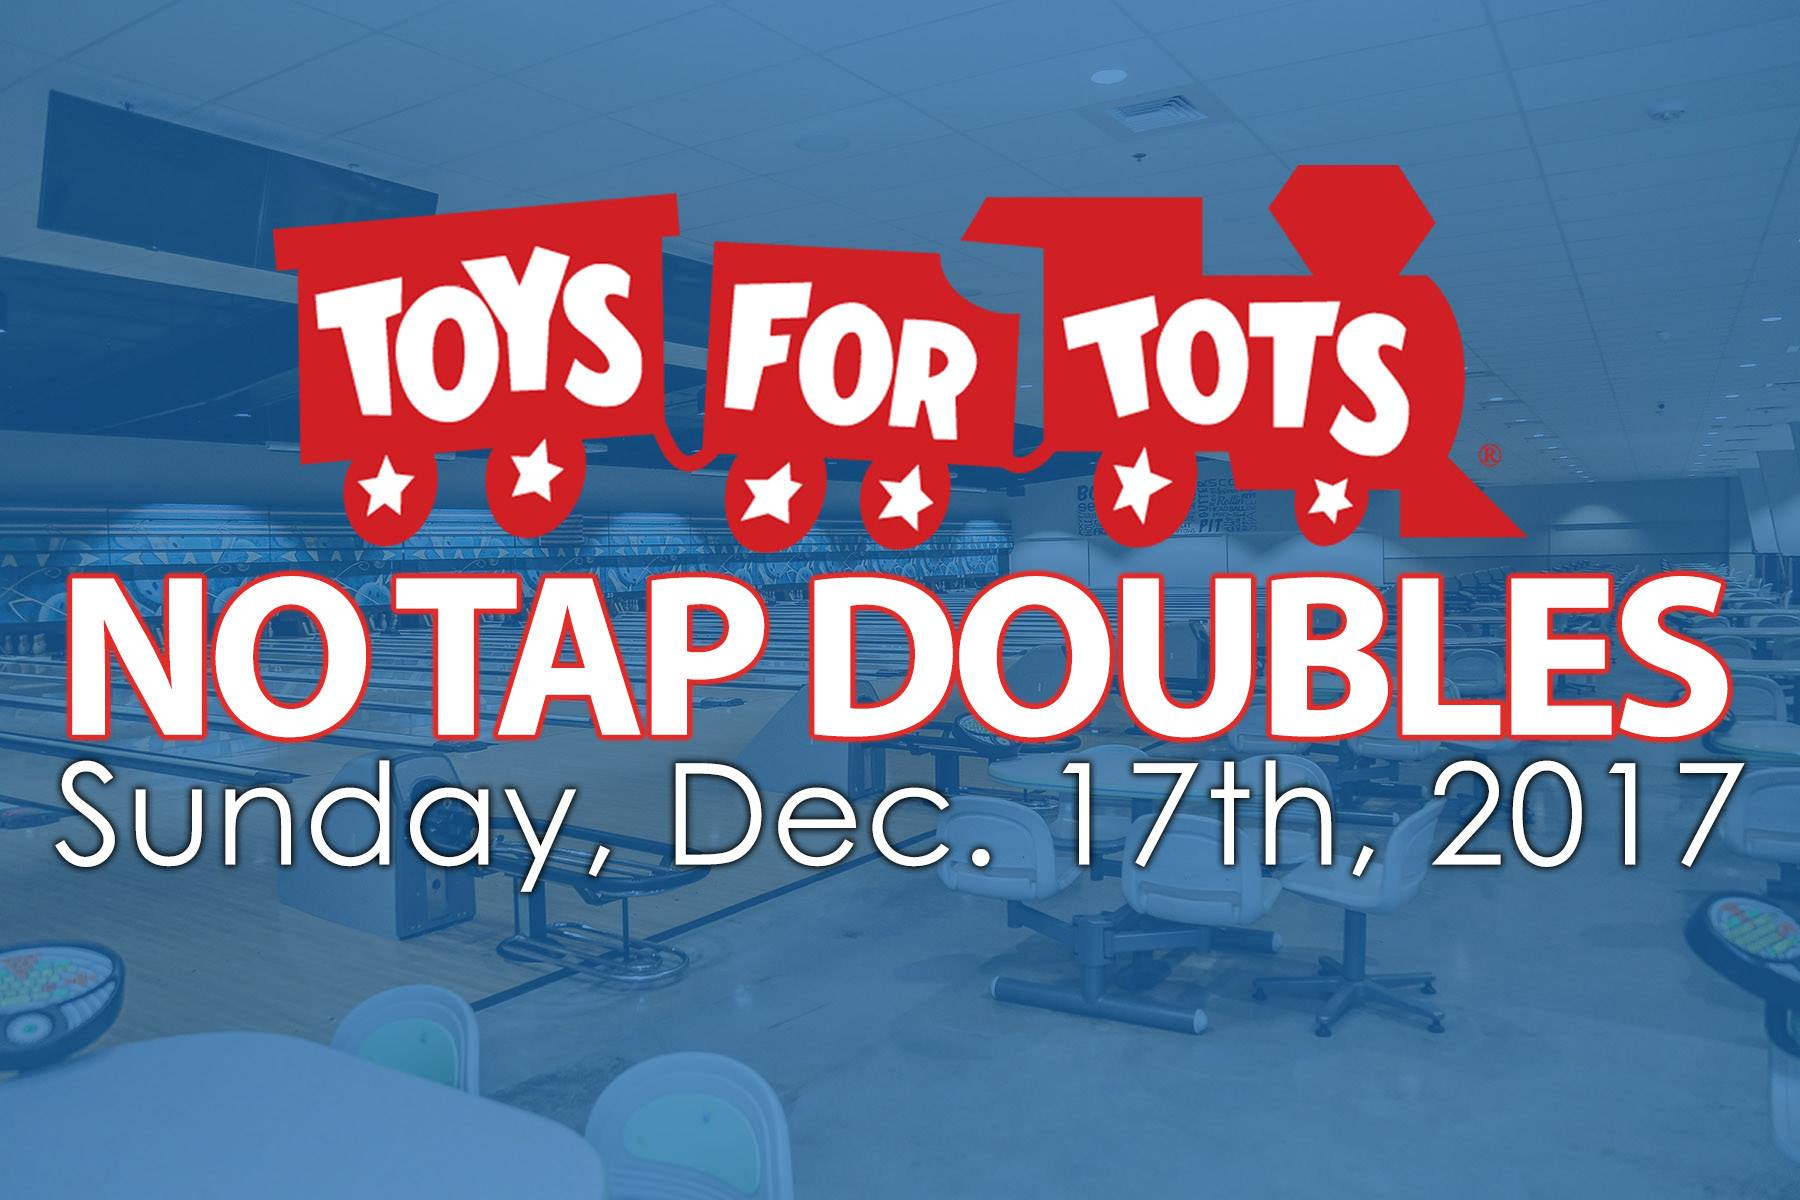 Fill A Truck 2017 Toys For Tots : Toys for tots no tap doubles time to spare entertainment